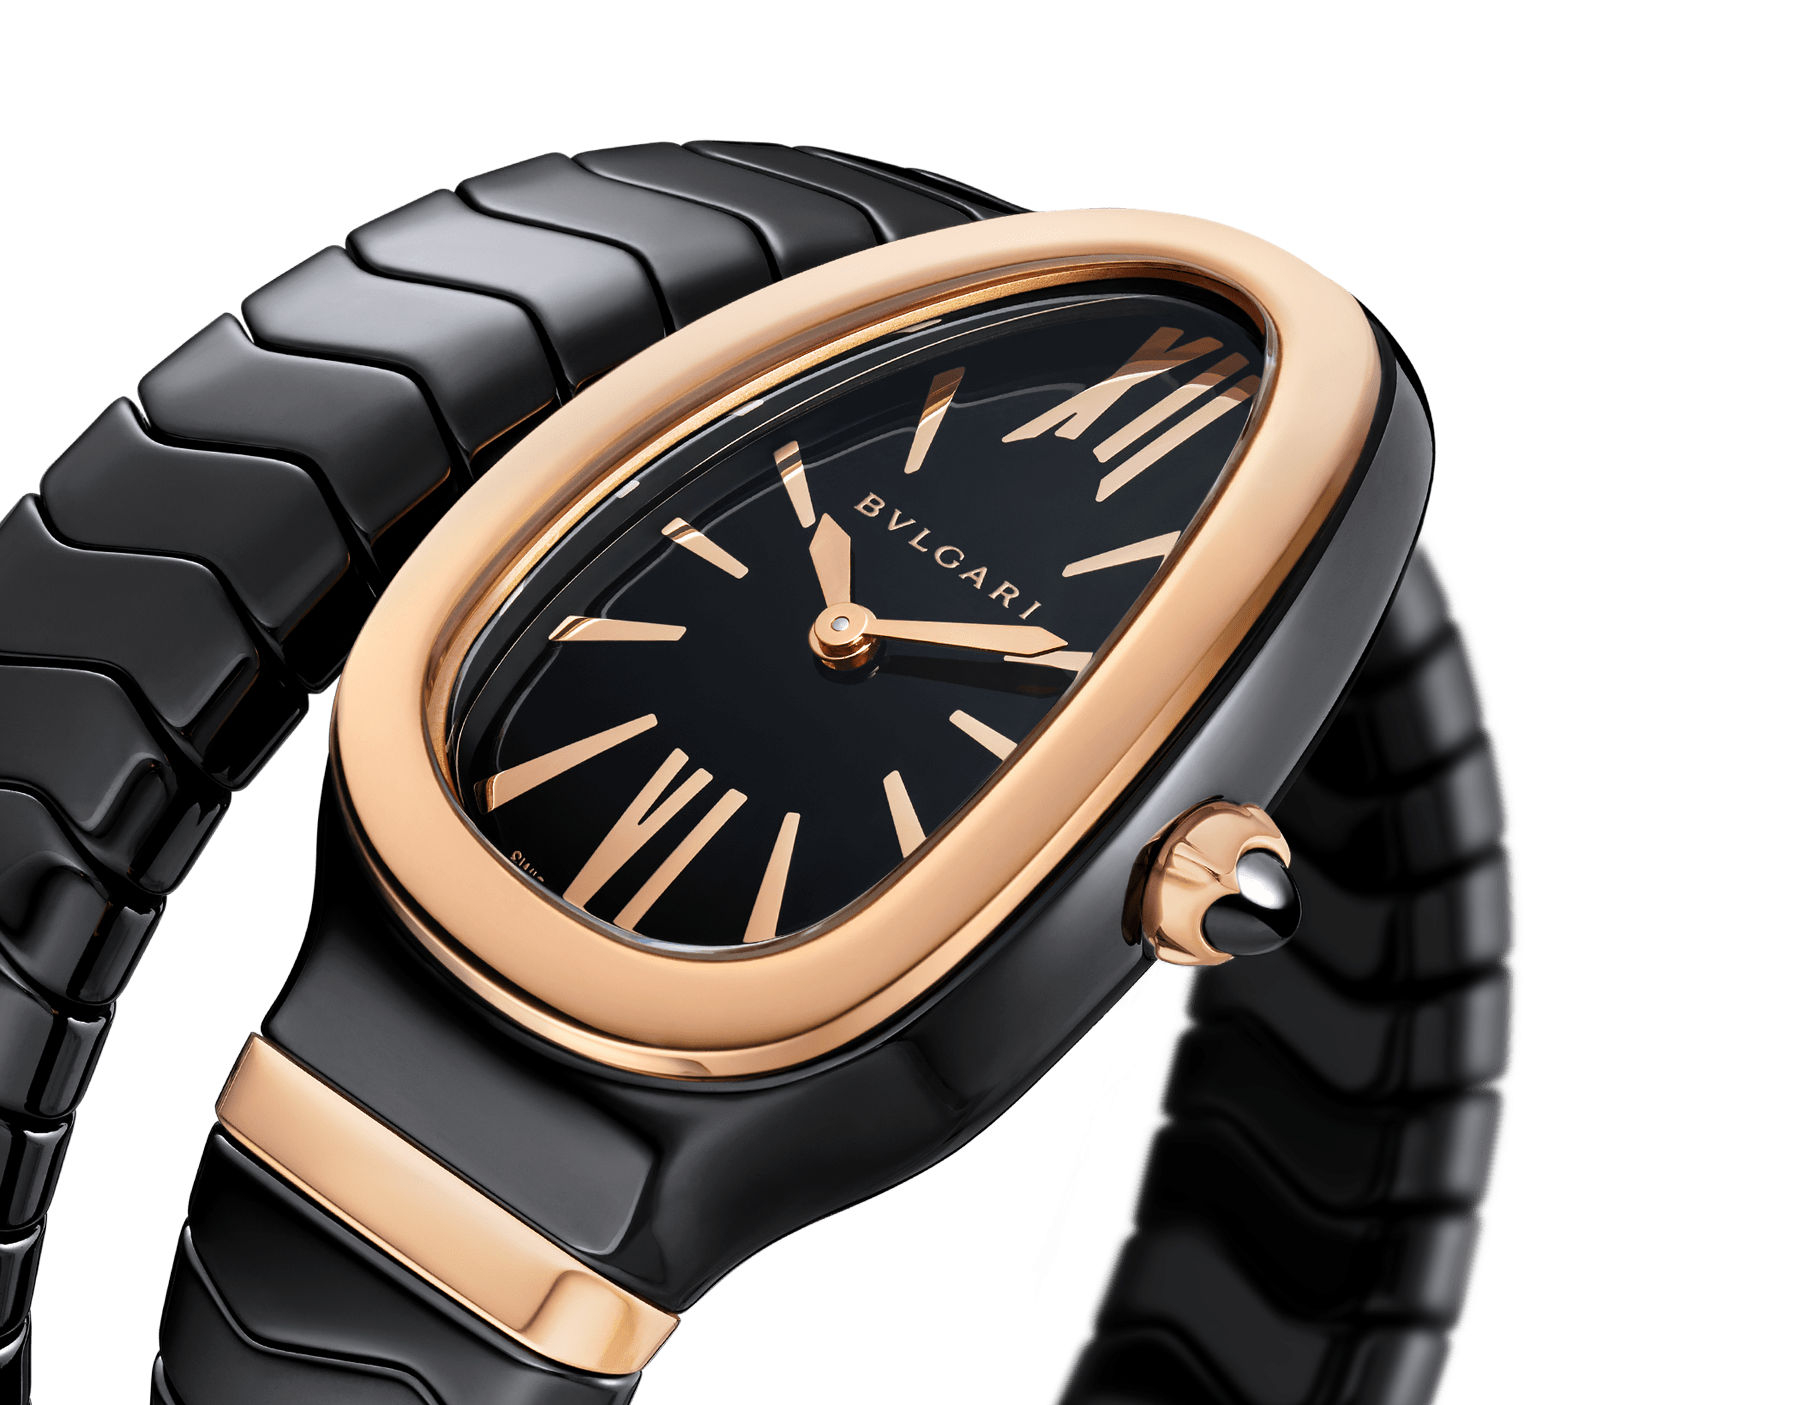 Serpenti Spiga single spiral watch with black ceramic case, 18 kt rose gold bezel, black lacquered dial and black ceramic bracelet set with 18 kt rose gold elements. 102735 image 3